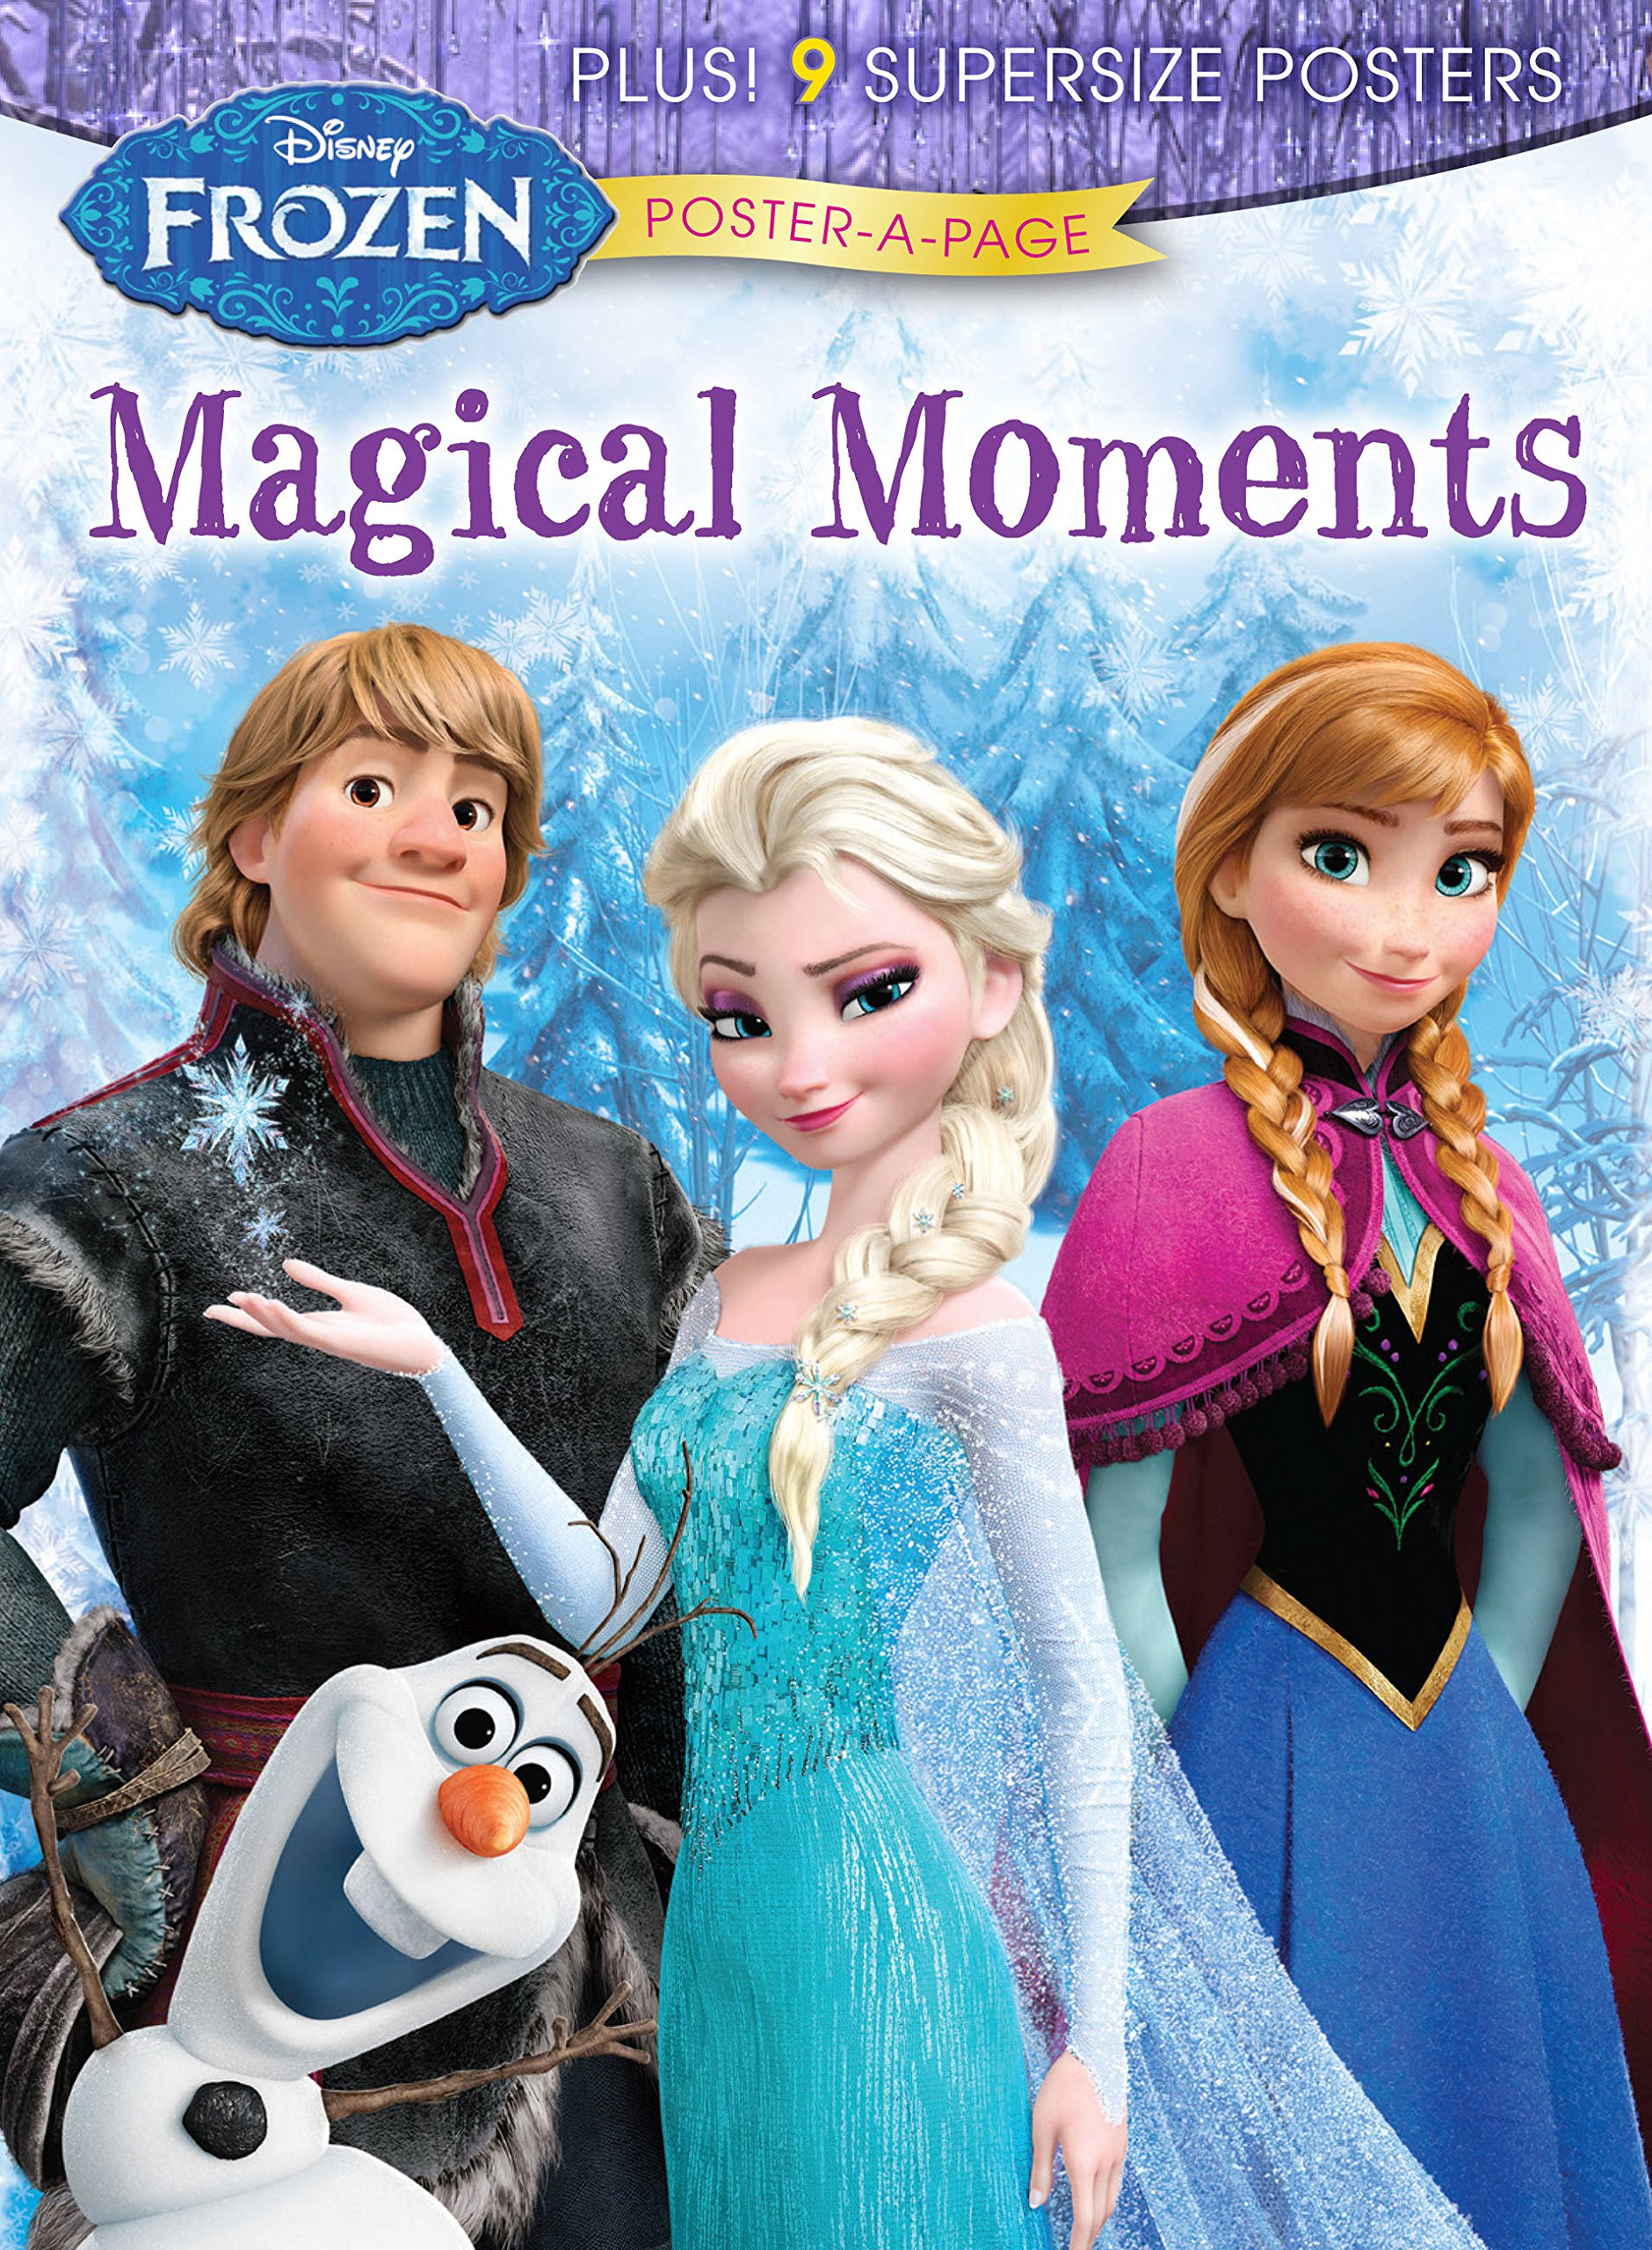 Disney Frozen: Magical Moments Poster-A-Page (Disney Frozen Poster-a-page) pdf